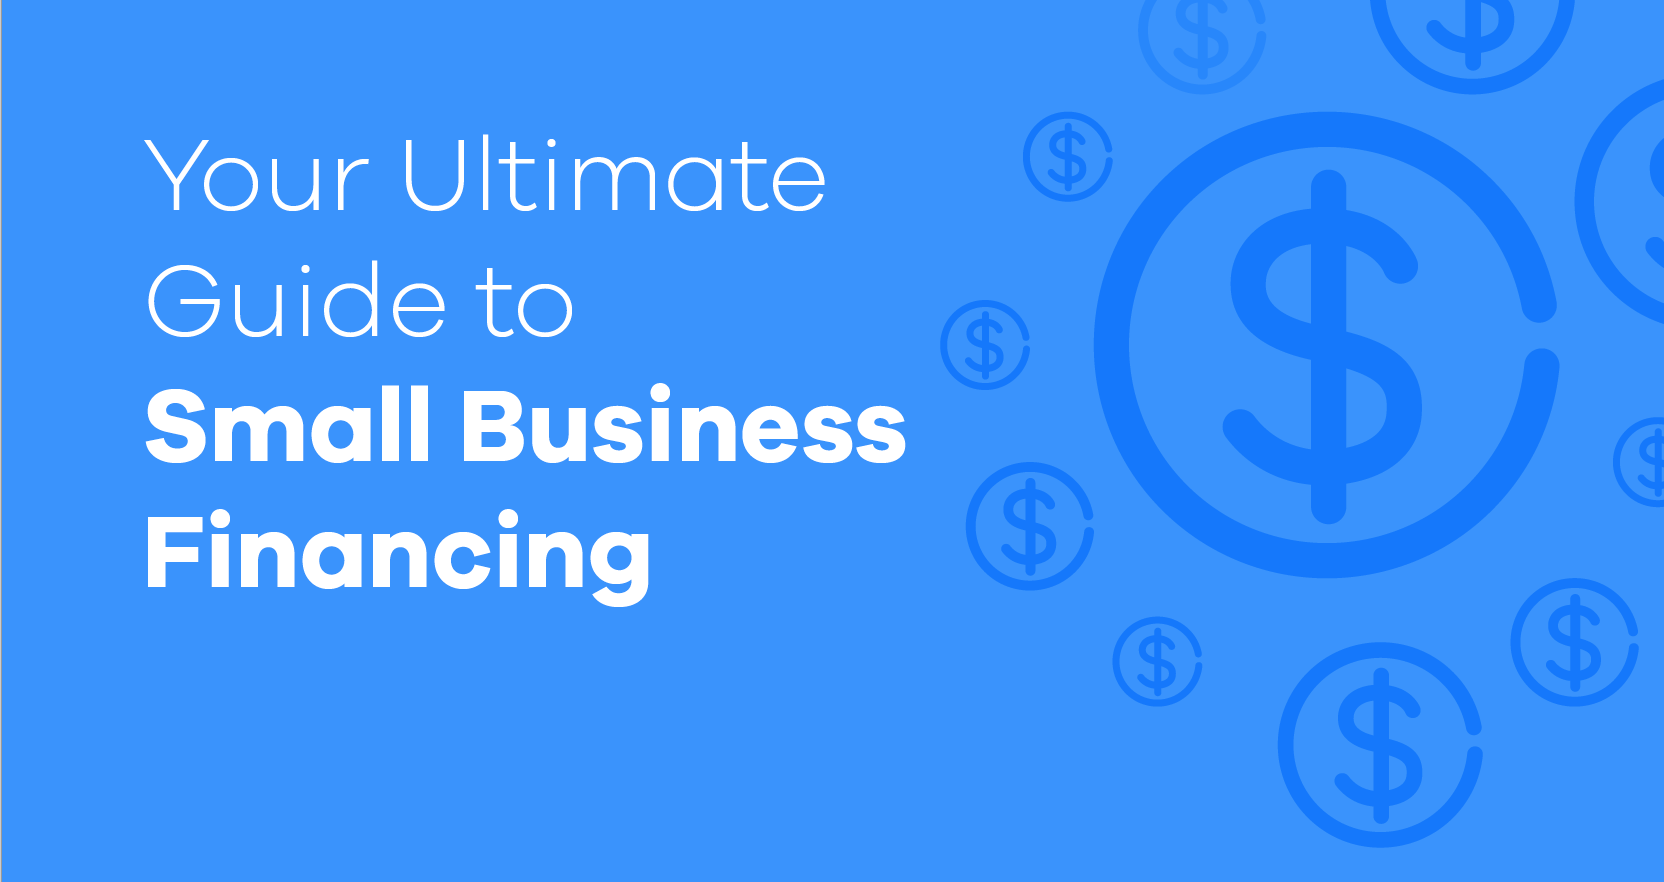 Guide to Small Business Financing